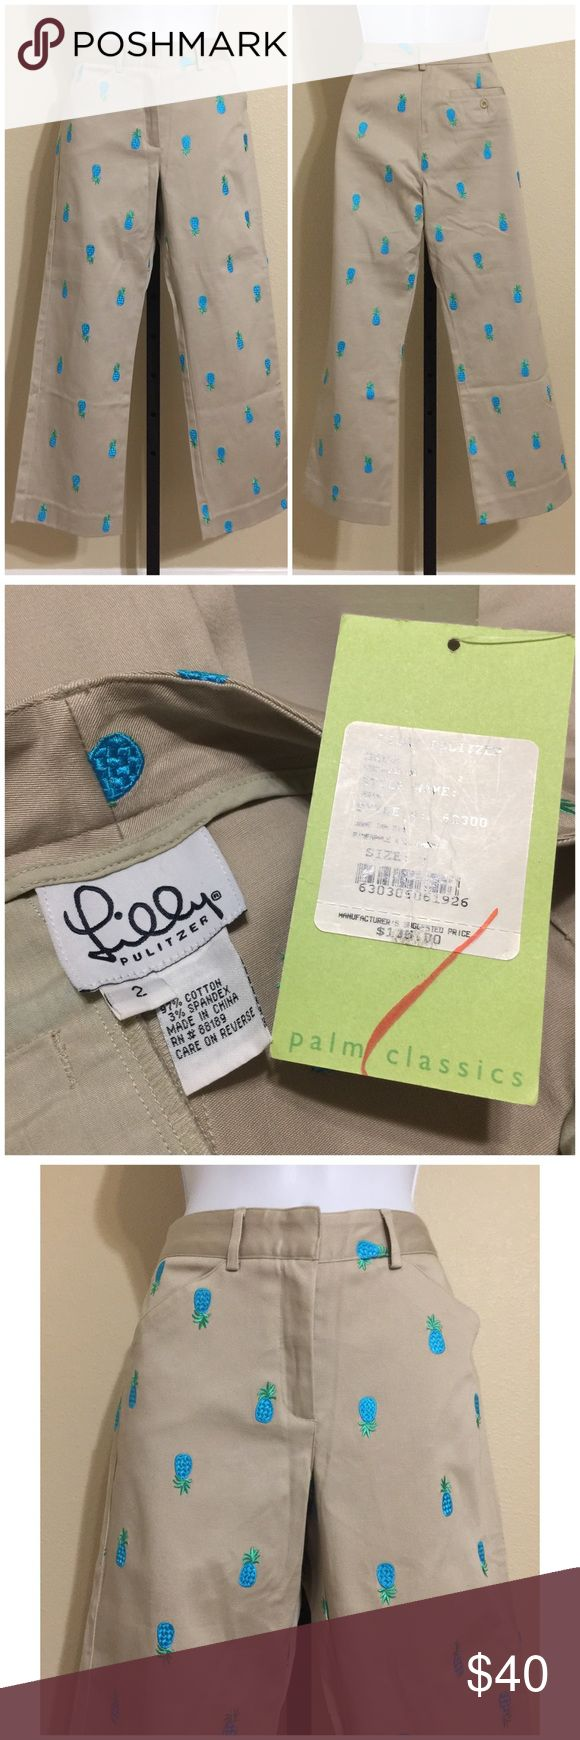 Lilly Pulitzer Megan Cropped Pants Size 2 • Lilly Pulitzer • Women's Capris, Cropped Pants • Size 2 • Tan Pineapple Megan Style • Embroidered Pineapple Design In Blue &            Green Colors • Zip Front • 1 Hidden Metal Clasp Closure • 2 Front Pockets • 1 Rear Pocket With Button Closure • Belt Loops • Stretch • Machine Washable • 97% Cotton 3% Spandex • Inseam Approx. 24 Inches • Rise Approx. 9.5 Inches • Waist Approx. 27 Inches • Hips Approx. 34 Inches • Cuff Approx. 15 Inches • MSRP $…